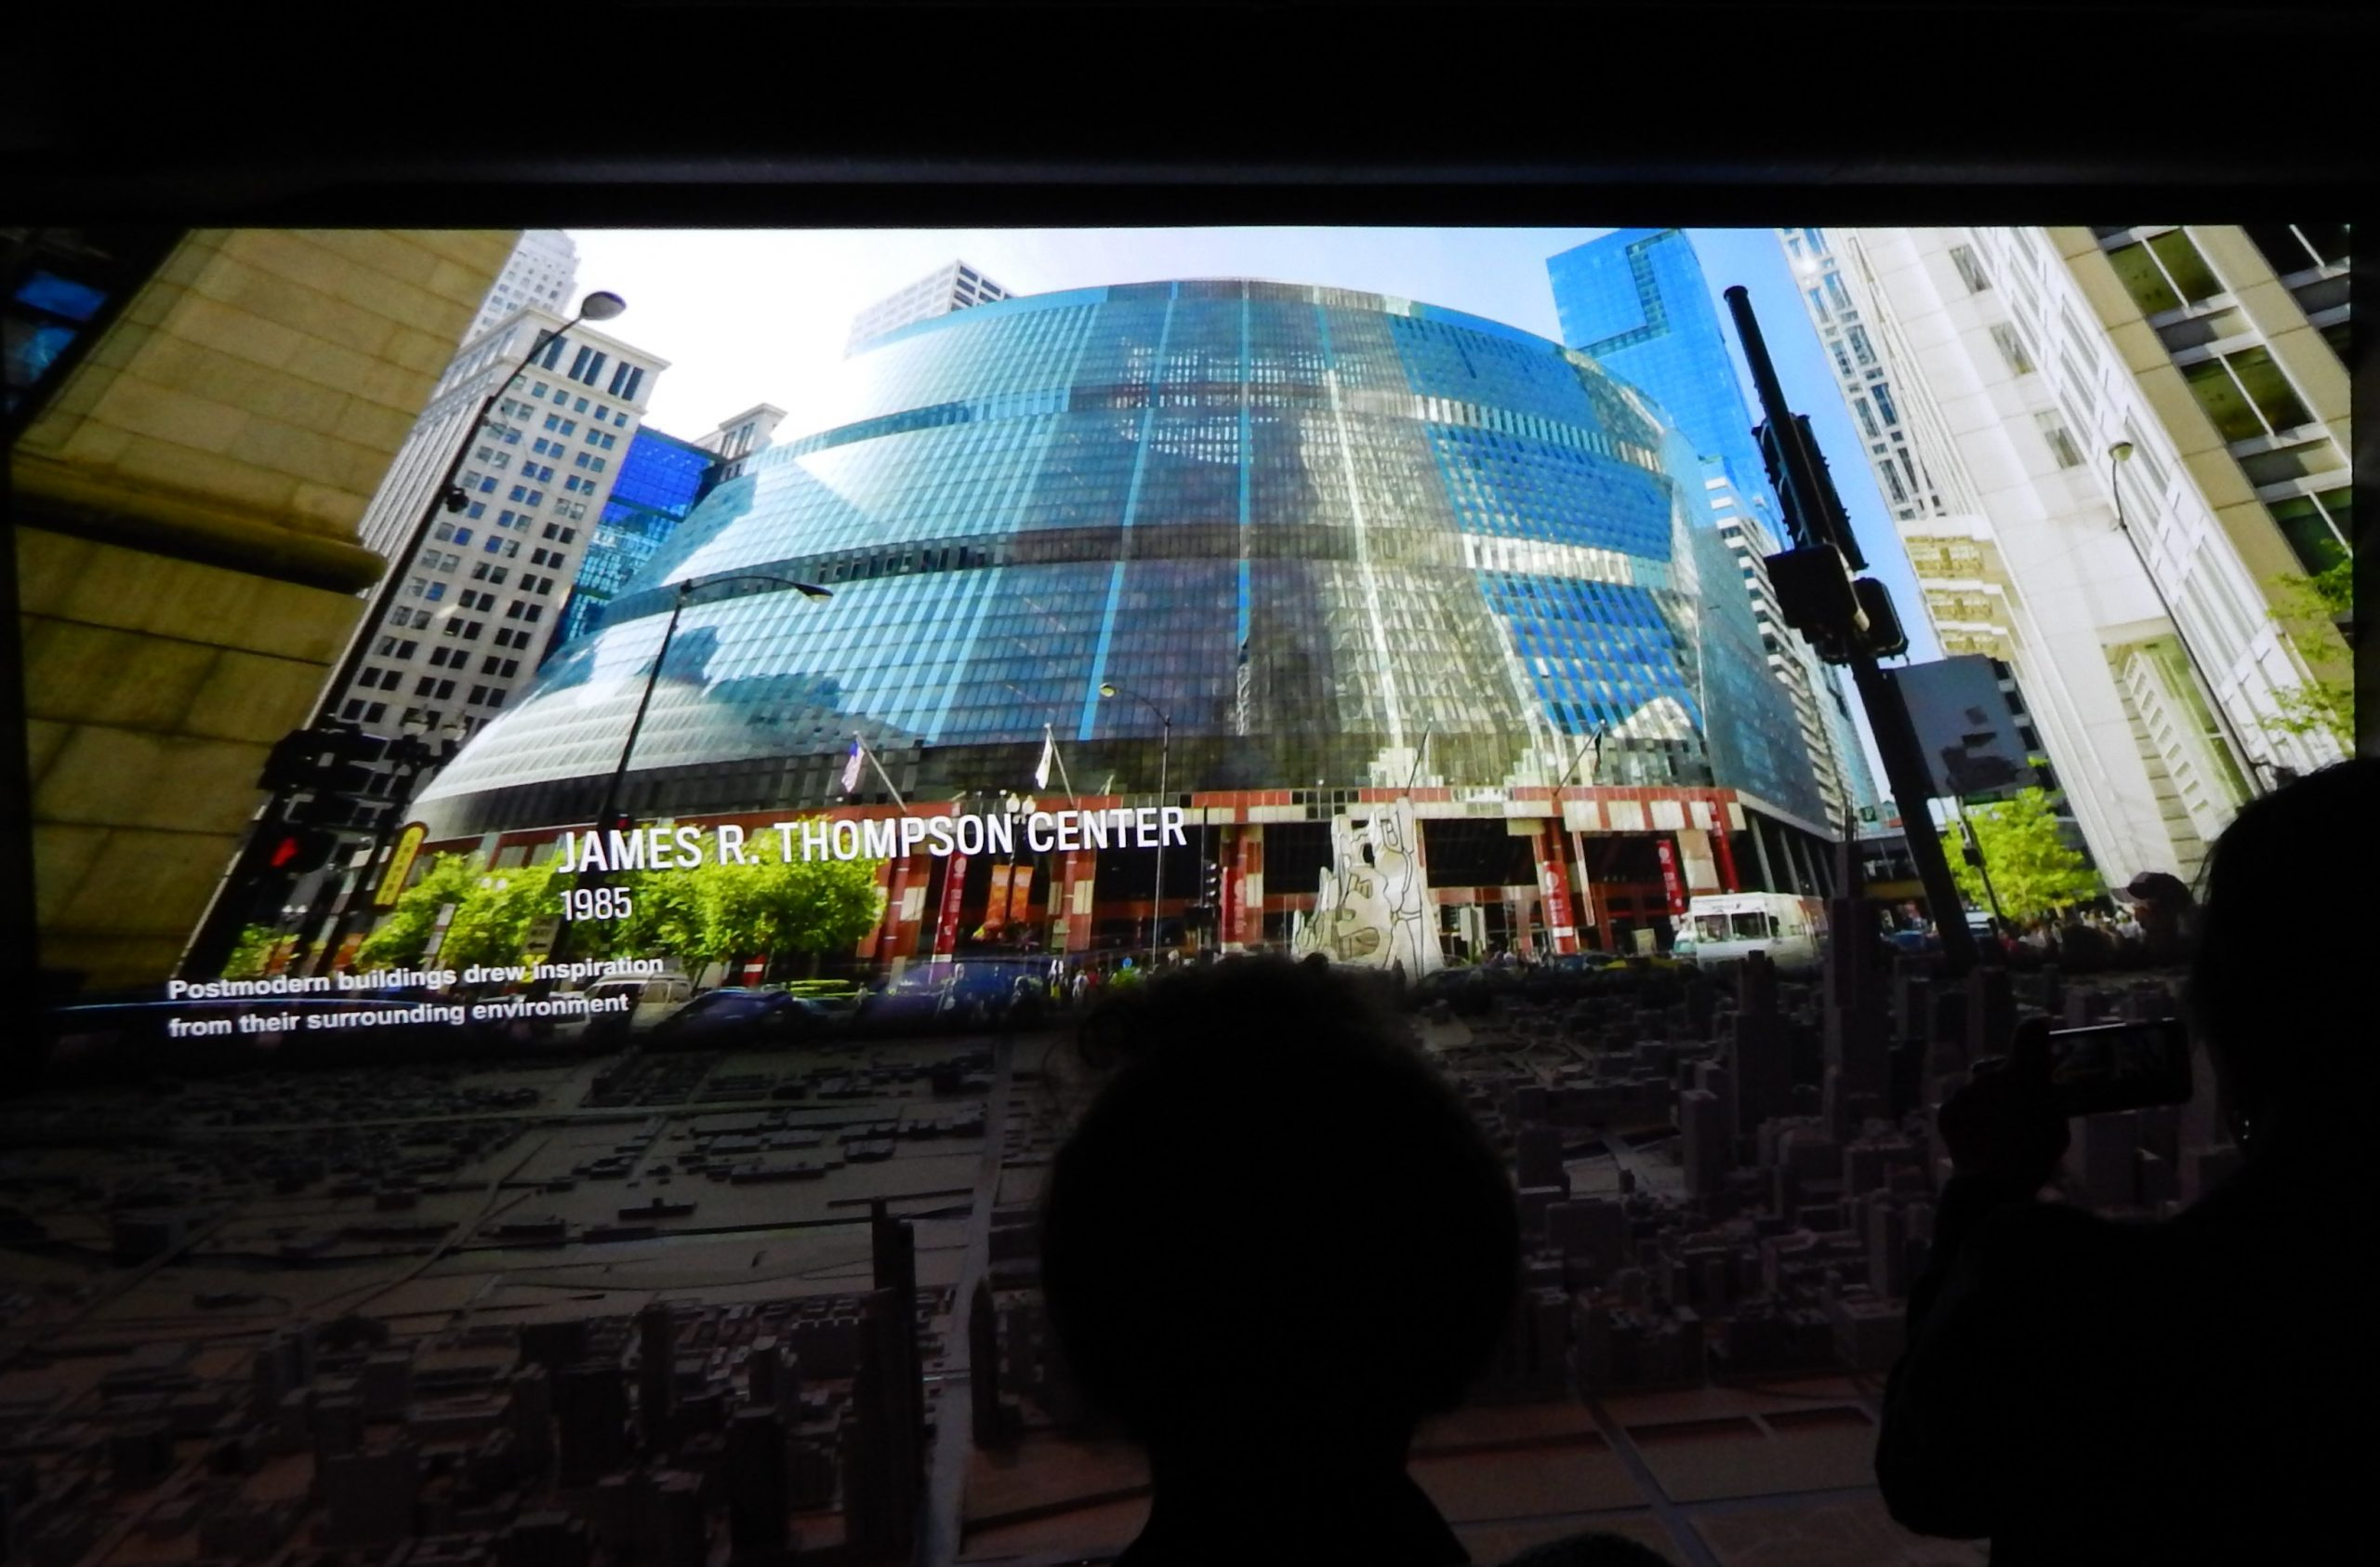 CAC's Chicago architecture film includes the endangered Thompson Center.